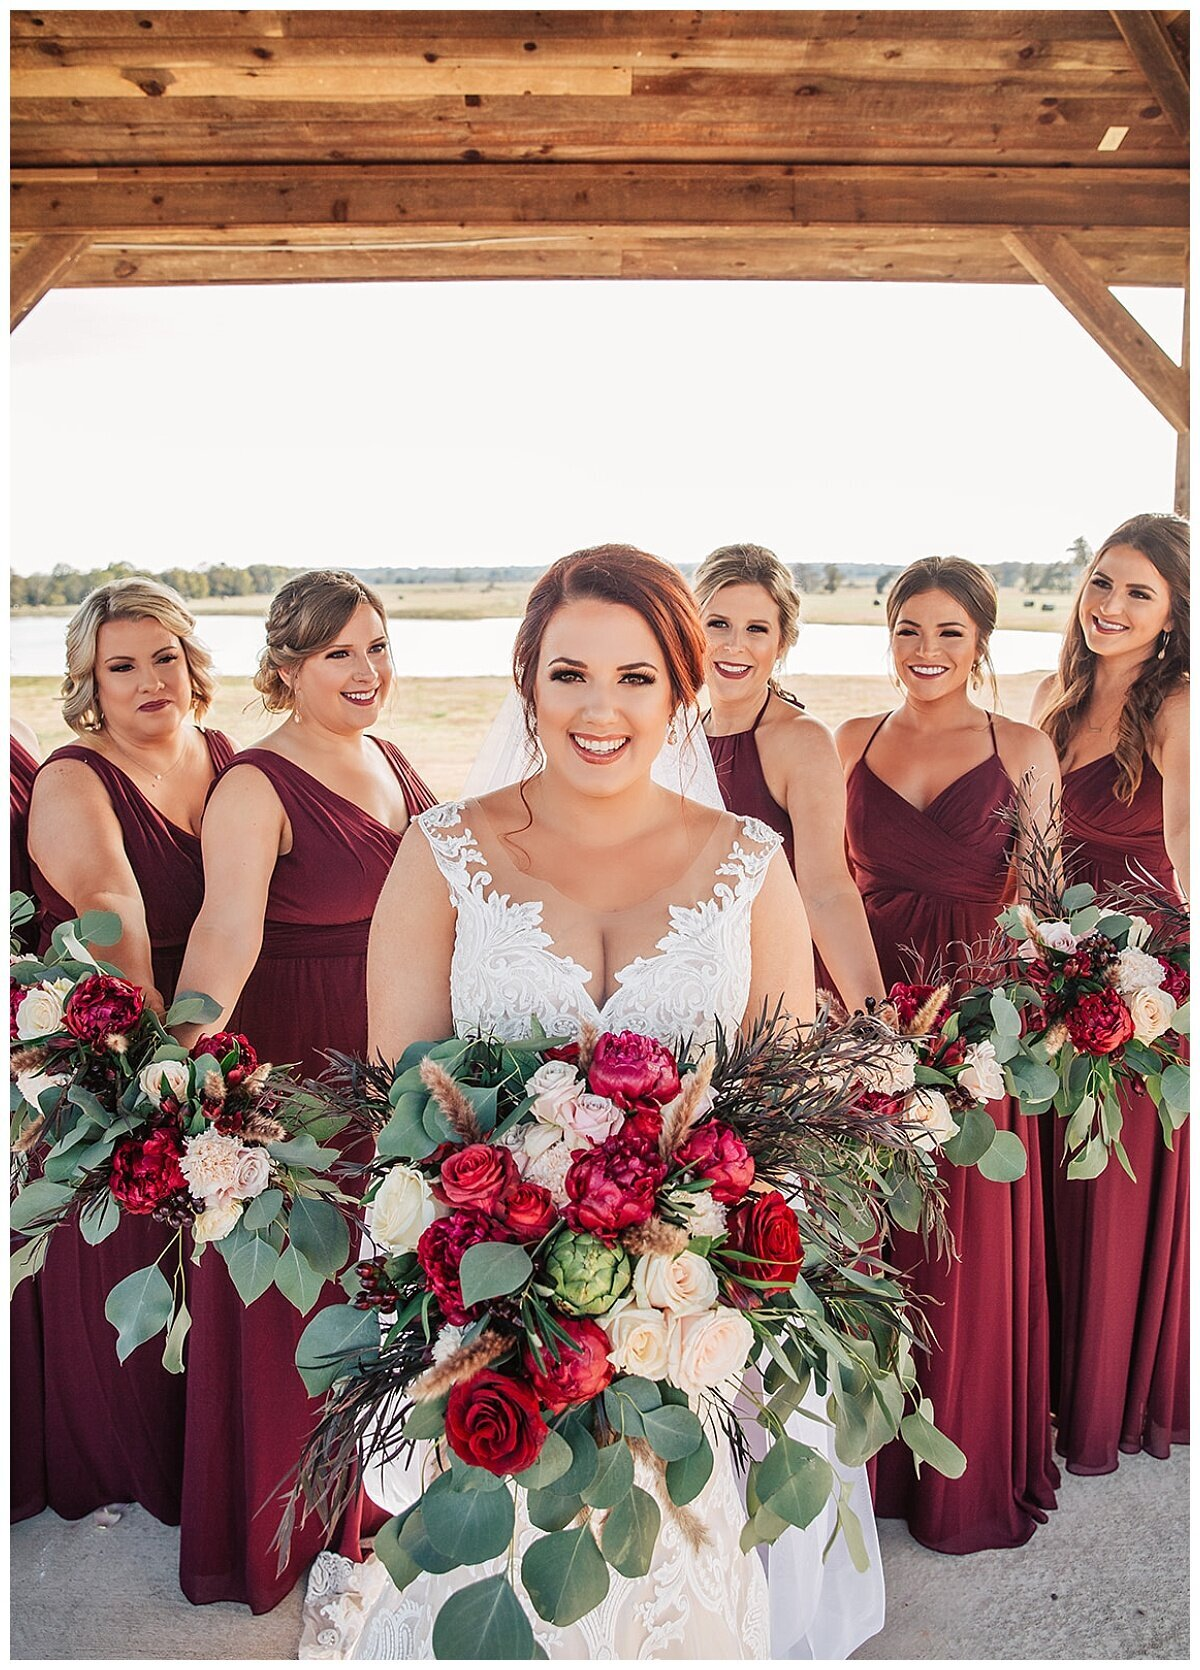 Houston Wedding Planner for Glam Boho Inspired Wedding- Wedding Party Photos at Emery's Buffalo Creek- J Richter Events_0002